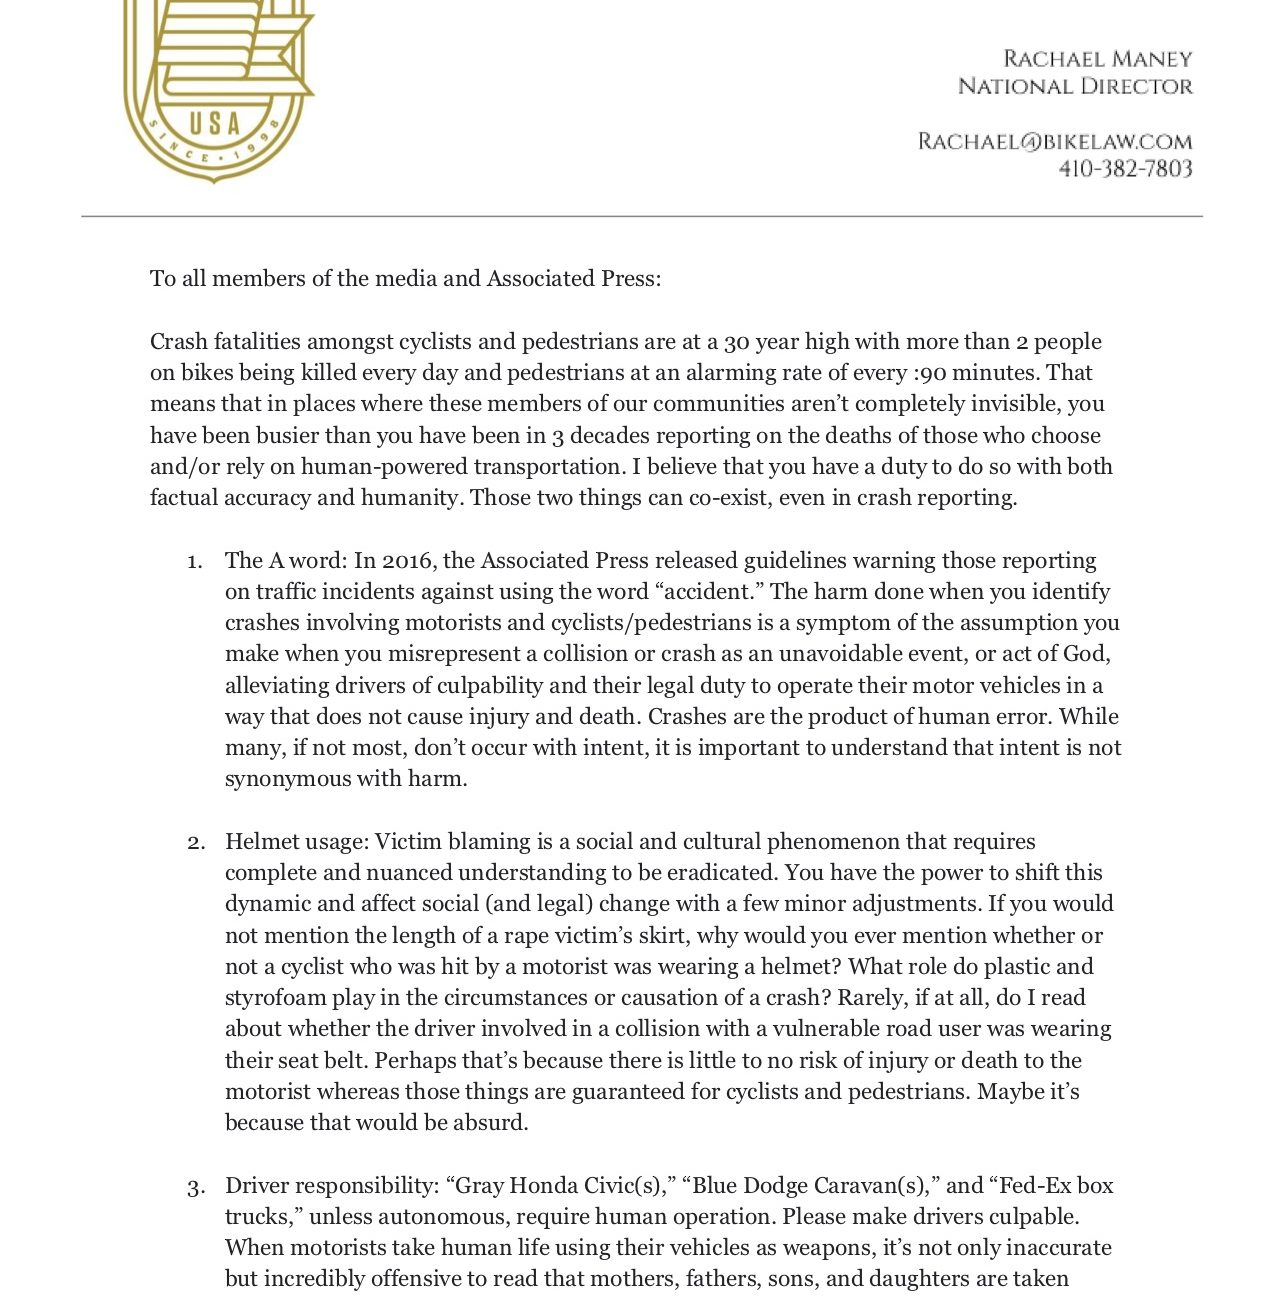 Letter to Media Page 1